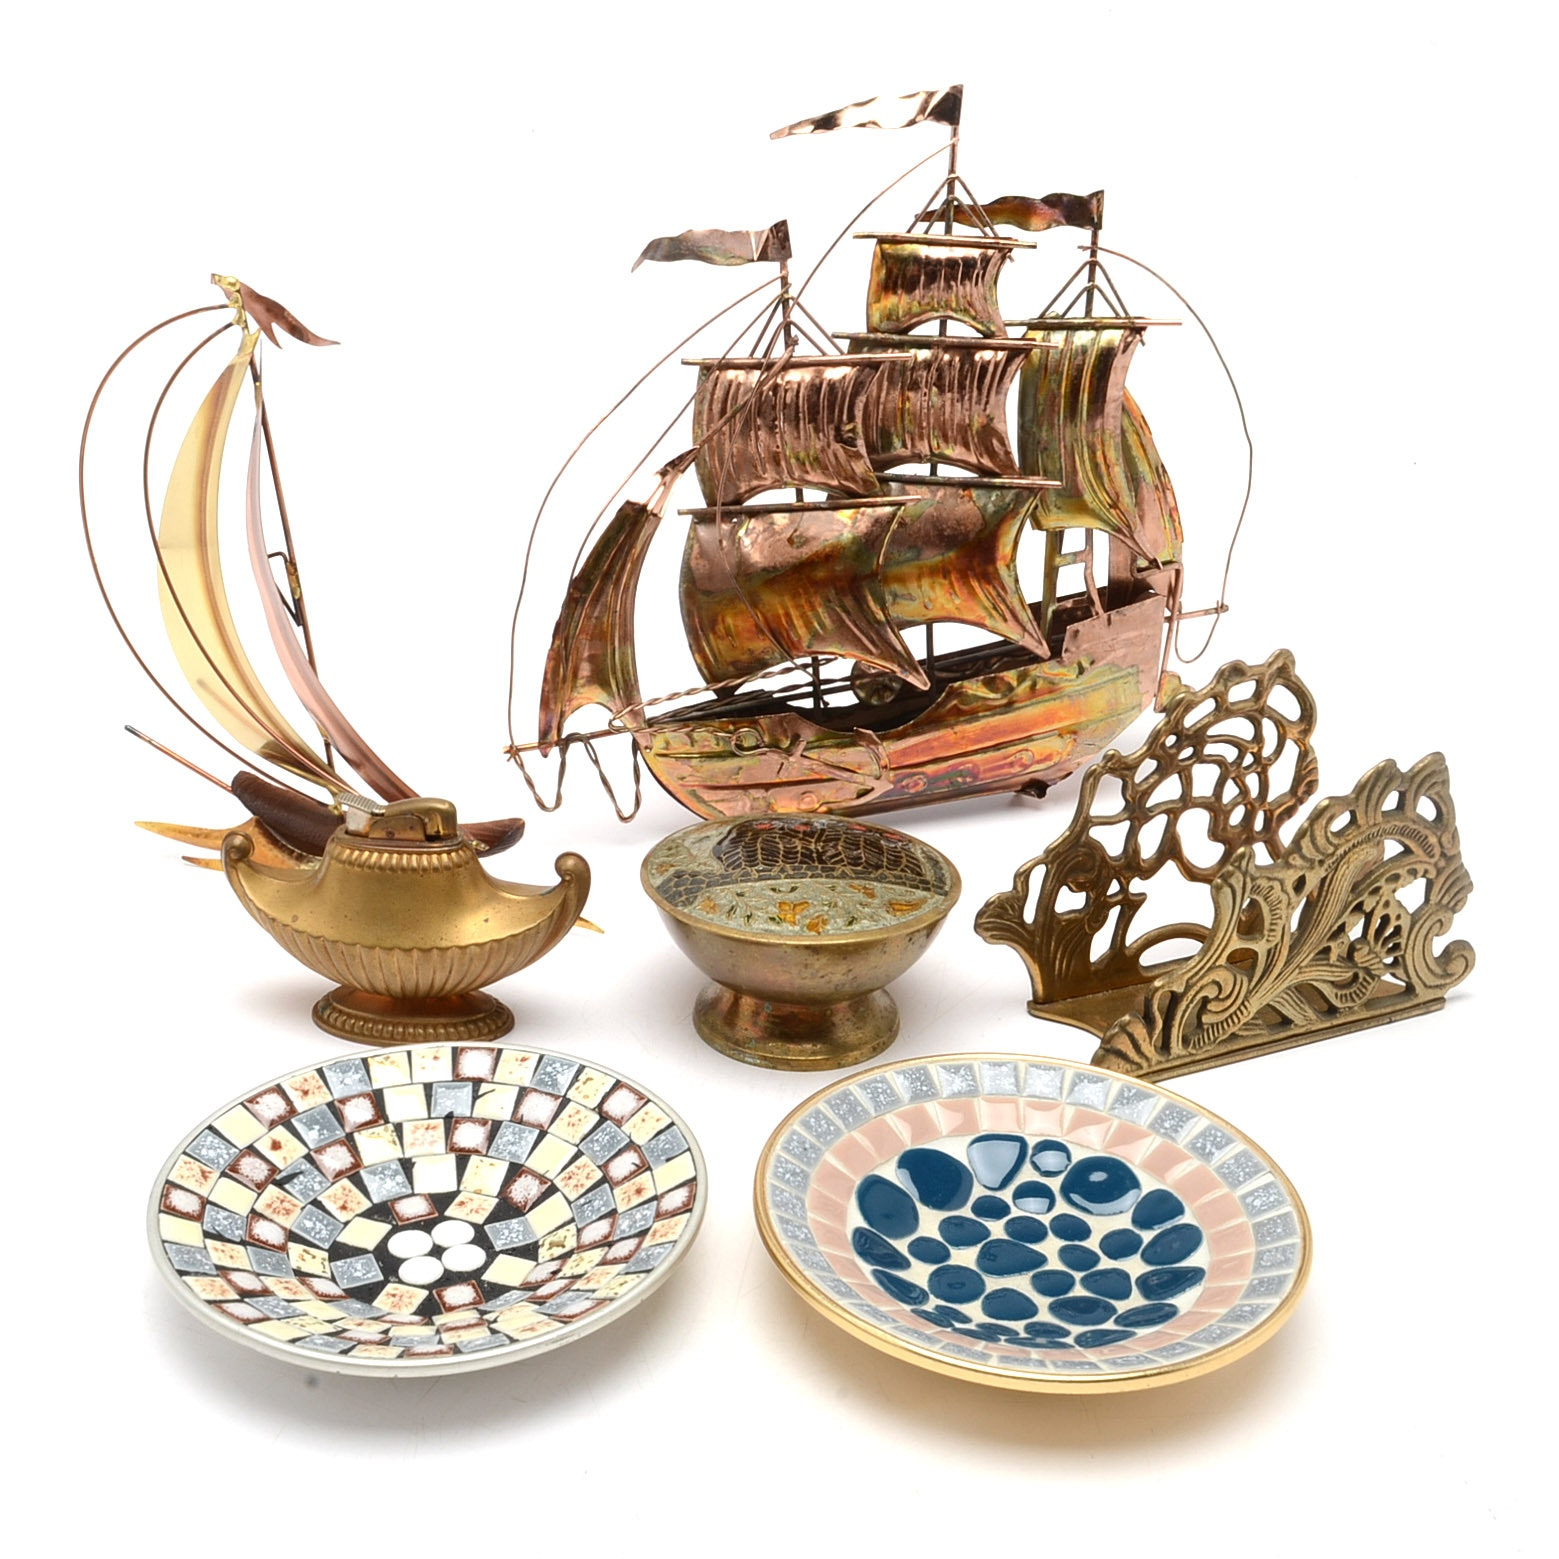 Collection of Metal Decoratives and Mosaic Trinket Dishes